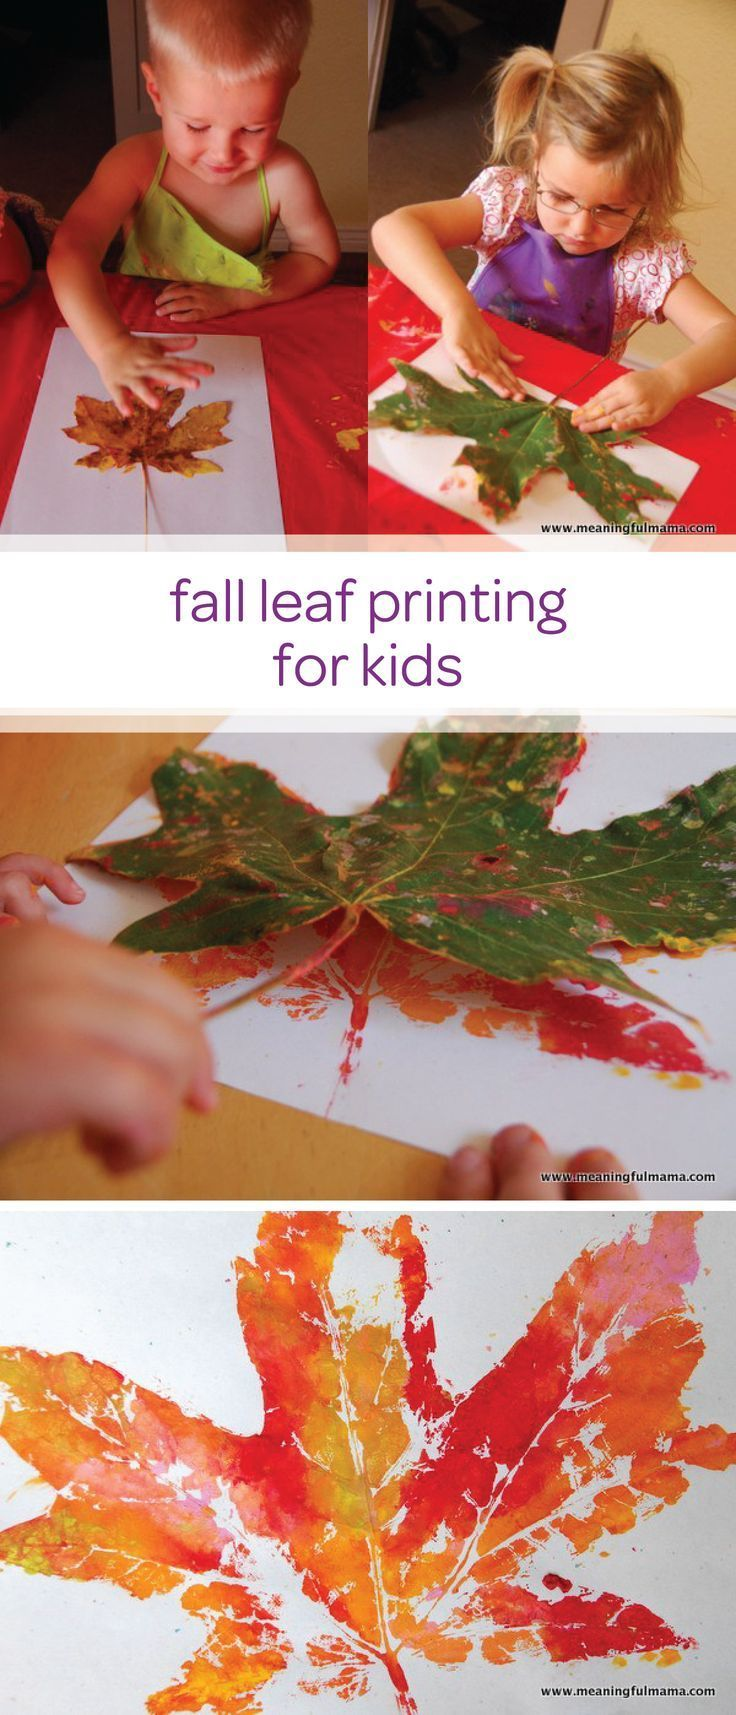 Let your little one enjoy an afternoon of painting and making a mess with child-safe paint and create this fall leaf printing toddler craft. This is a quick and creative DIY project that can easily double as a fun learning activity for your toddler to practice their fine motor skills.